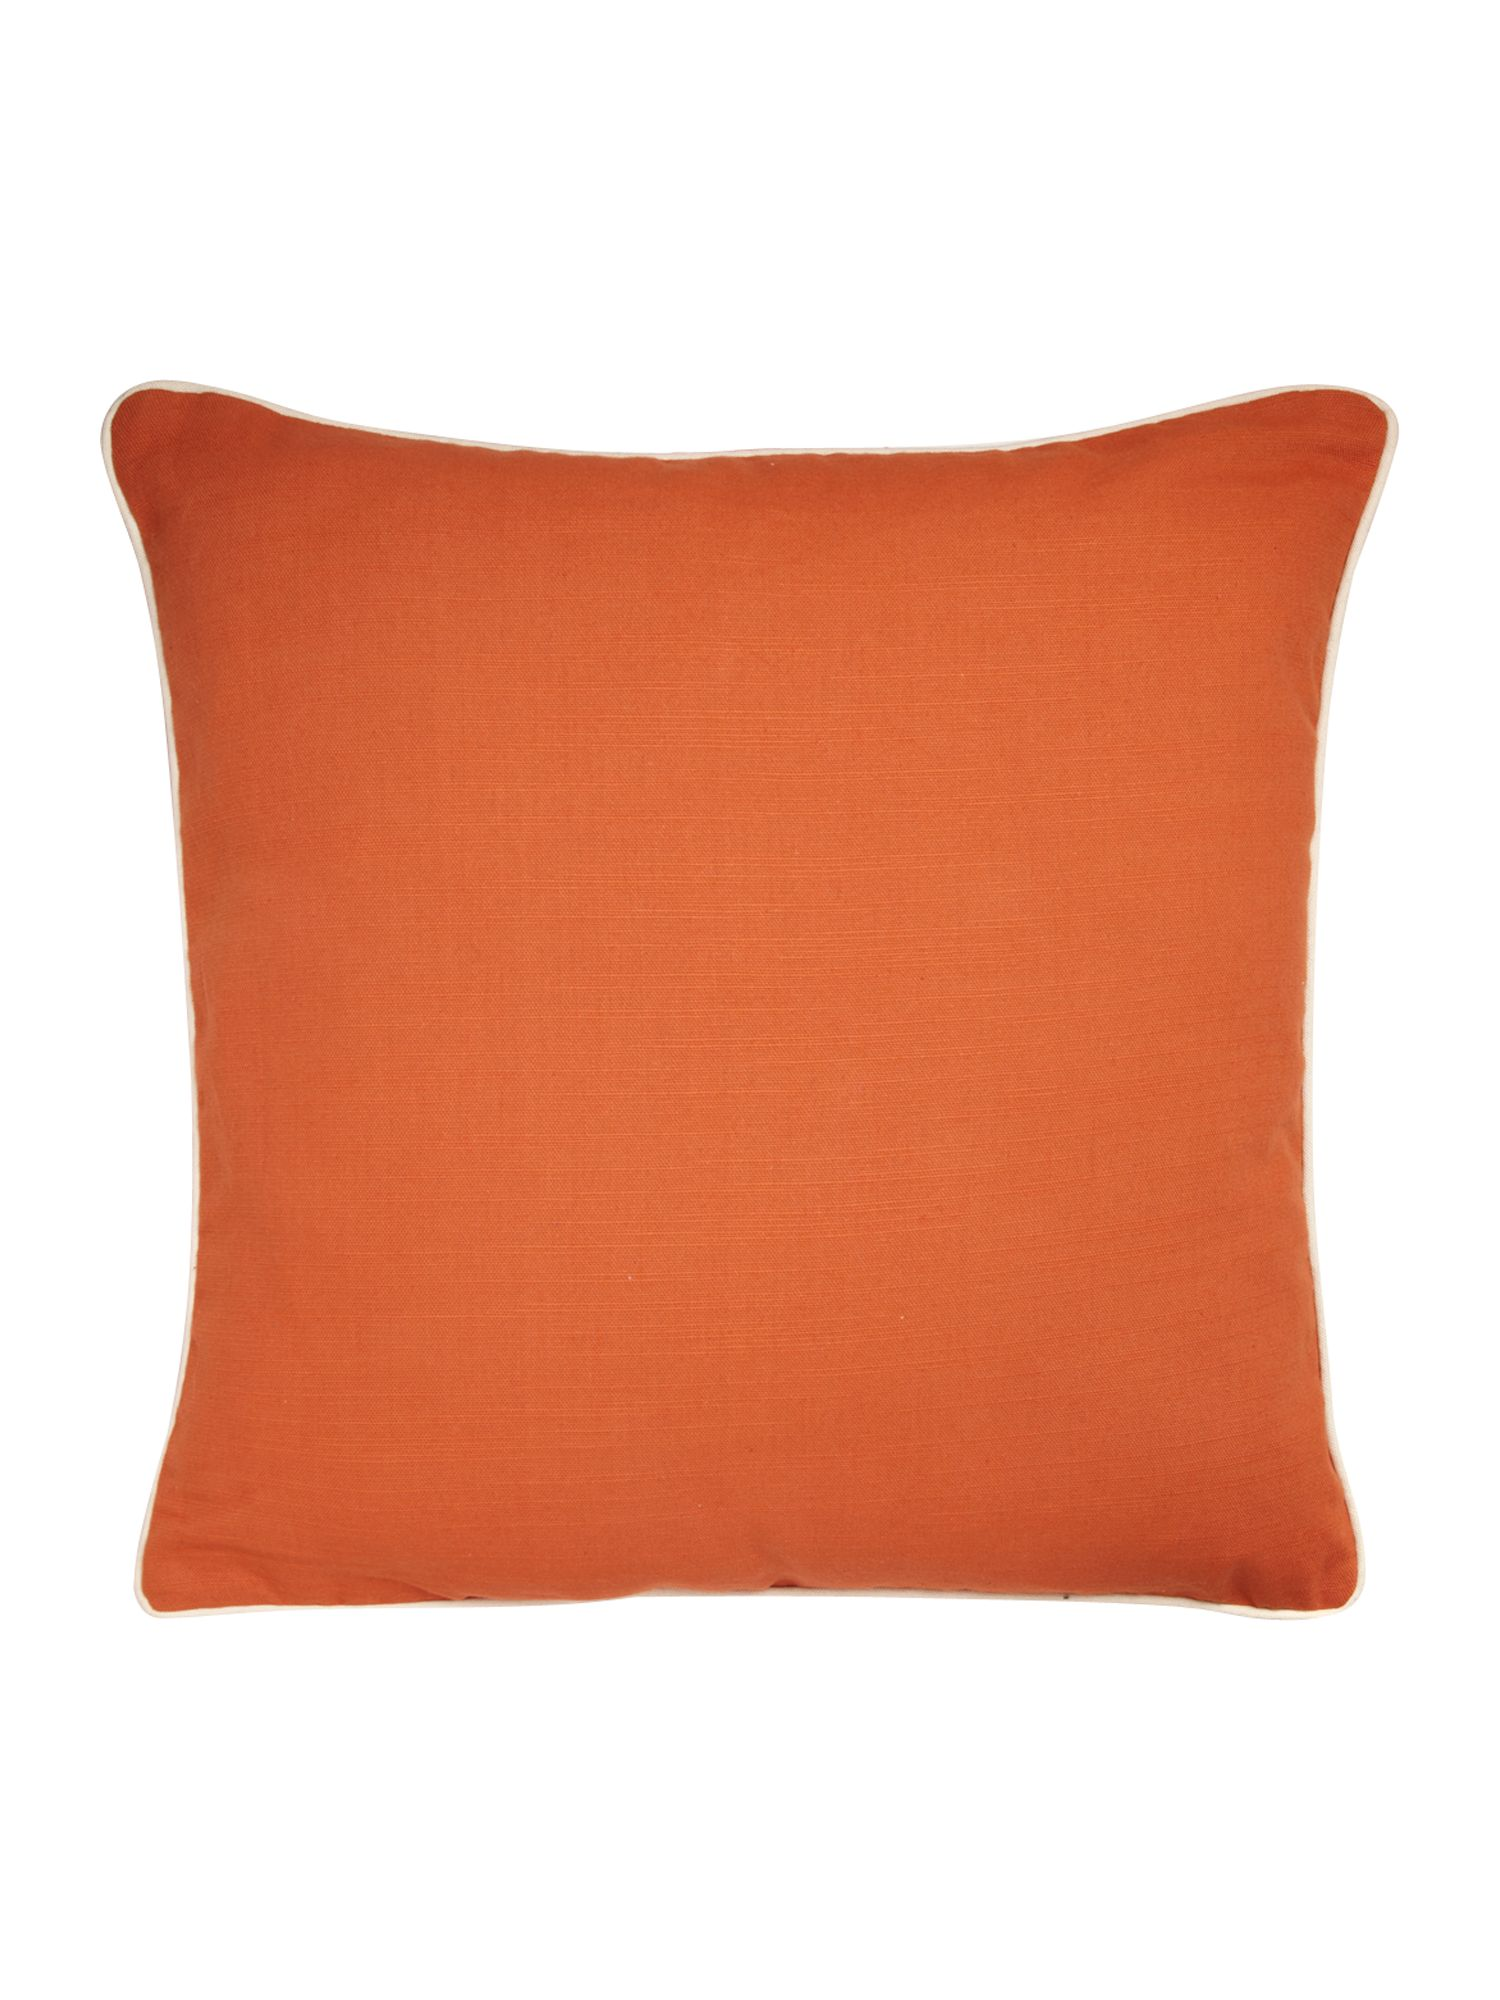 Orange cotton cushion with contrast piping